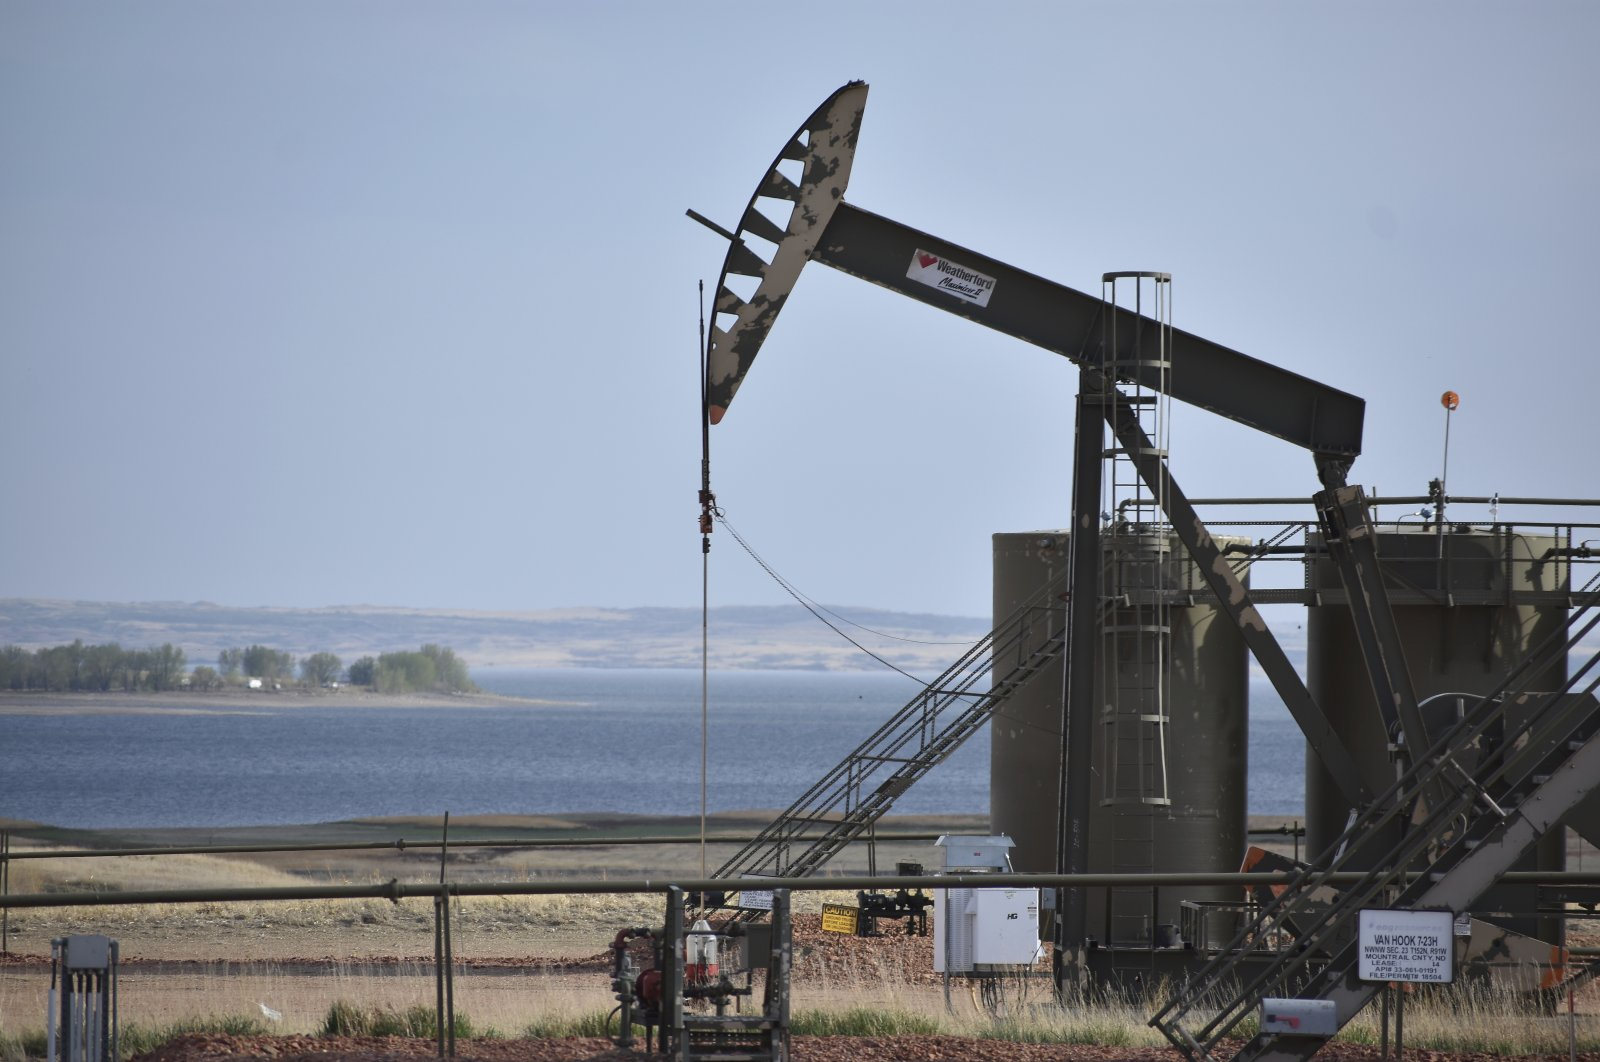 A pump jack extracts oil from beneath the ground on the Fort Berthold Indian Reservation, with Lake Sakakawea in the background, east of New Town, North Dakota, U.S., May 19, 2021. (AP Photo)